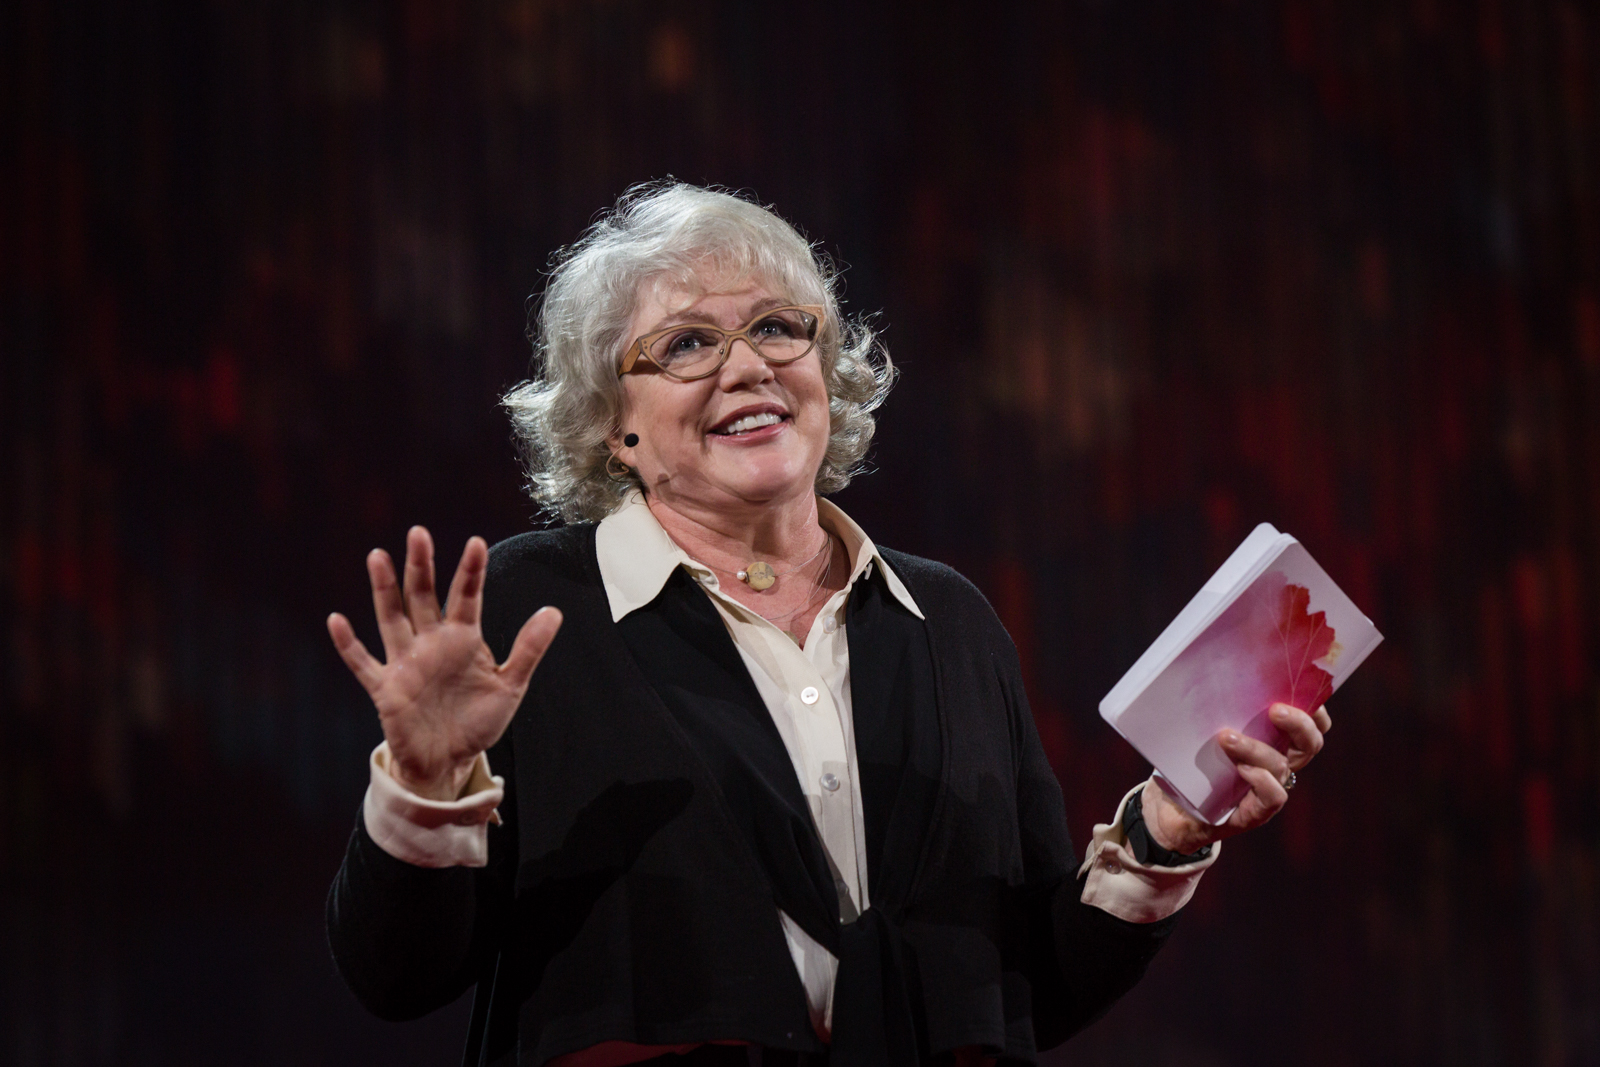 Julia Sweeney speaks at TED2016 - Dream, February 15-19, 2016, Vancouver Convention Center, Vancouver, Canada. Photo: Ryan Lash / TED